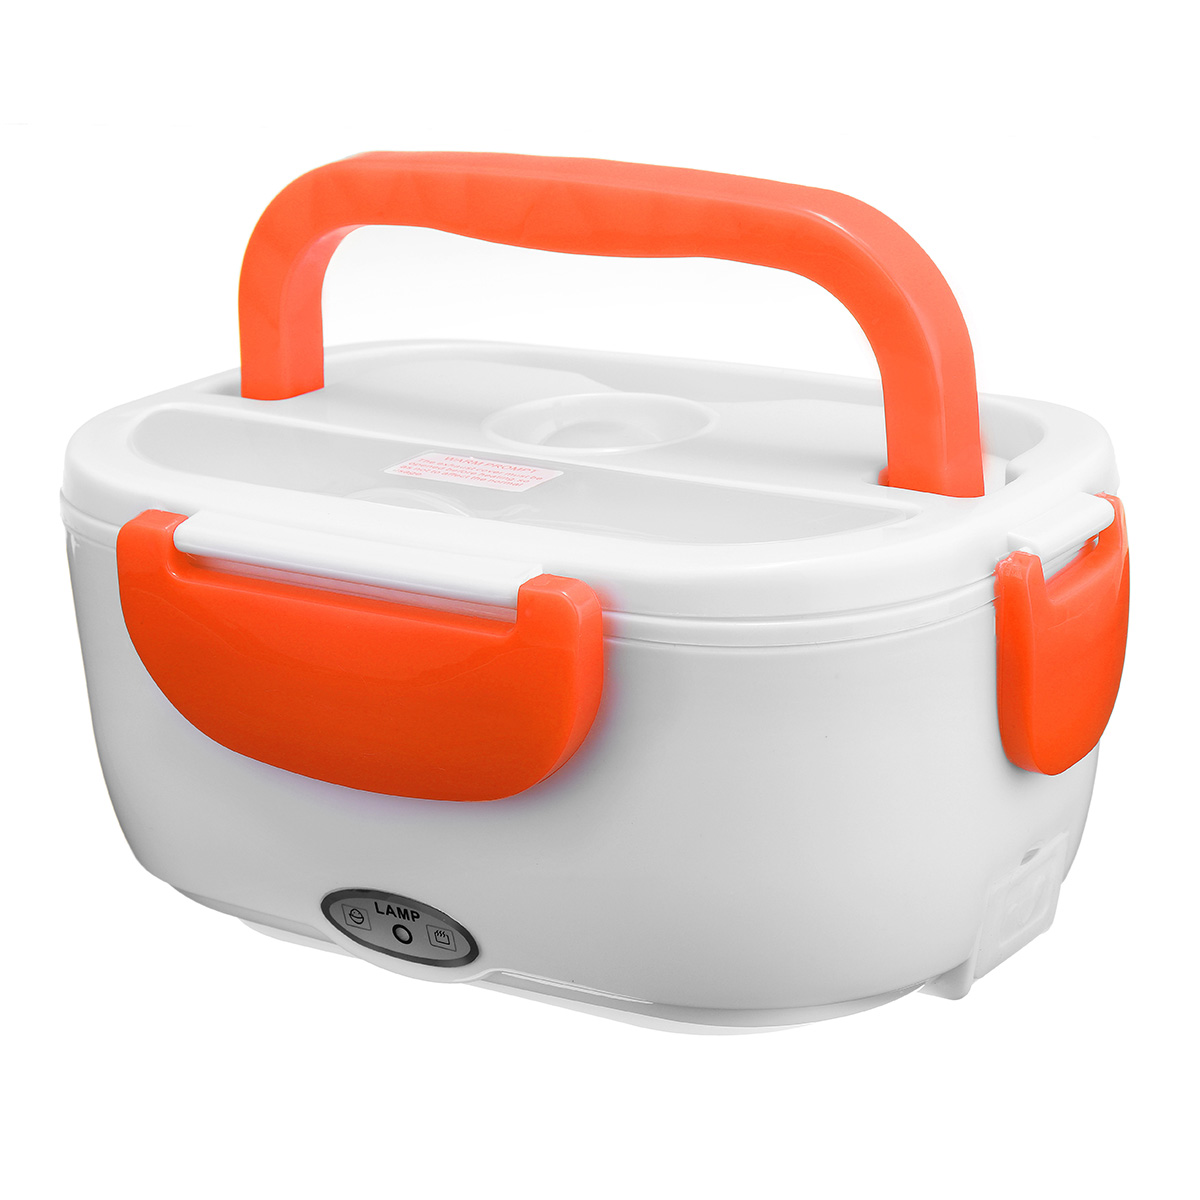 12/110/220V Portable Electric Heated Lunch Box Bento Boxes Car Food Rice Container Warmer For School Office Home Dinnerware